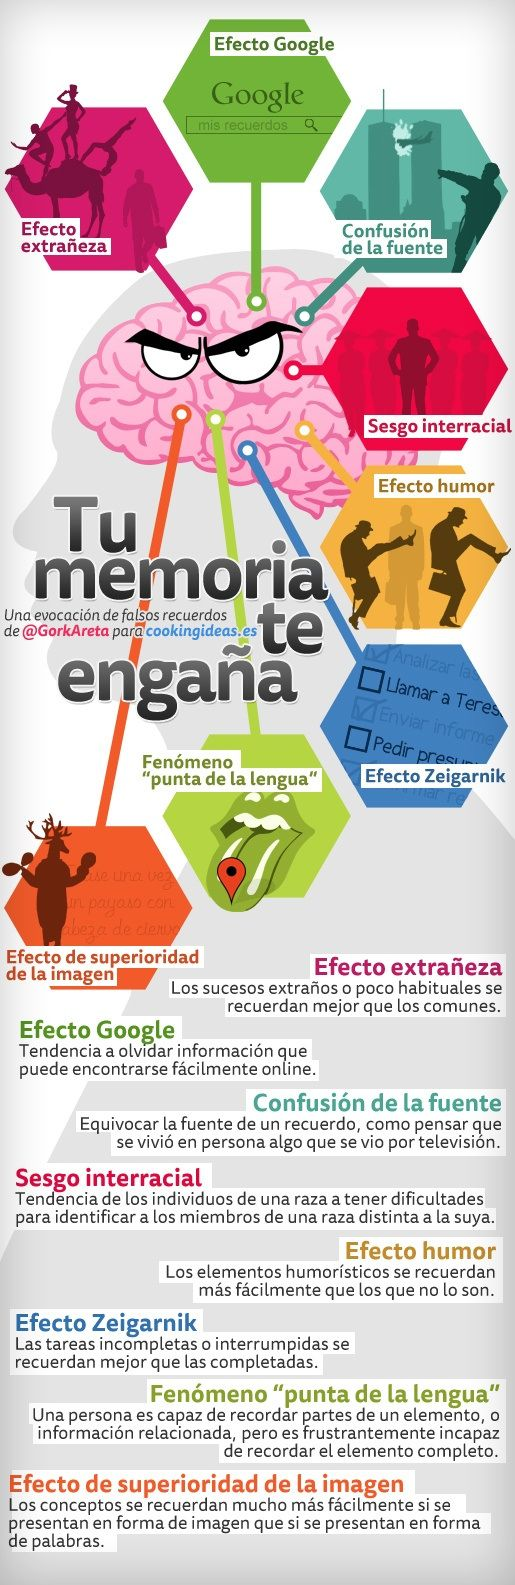 Tu memoria te engaña #infografia #infographic #education #psychology